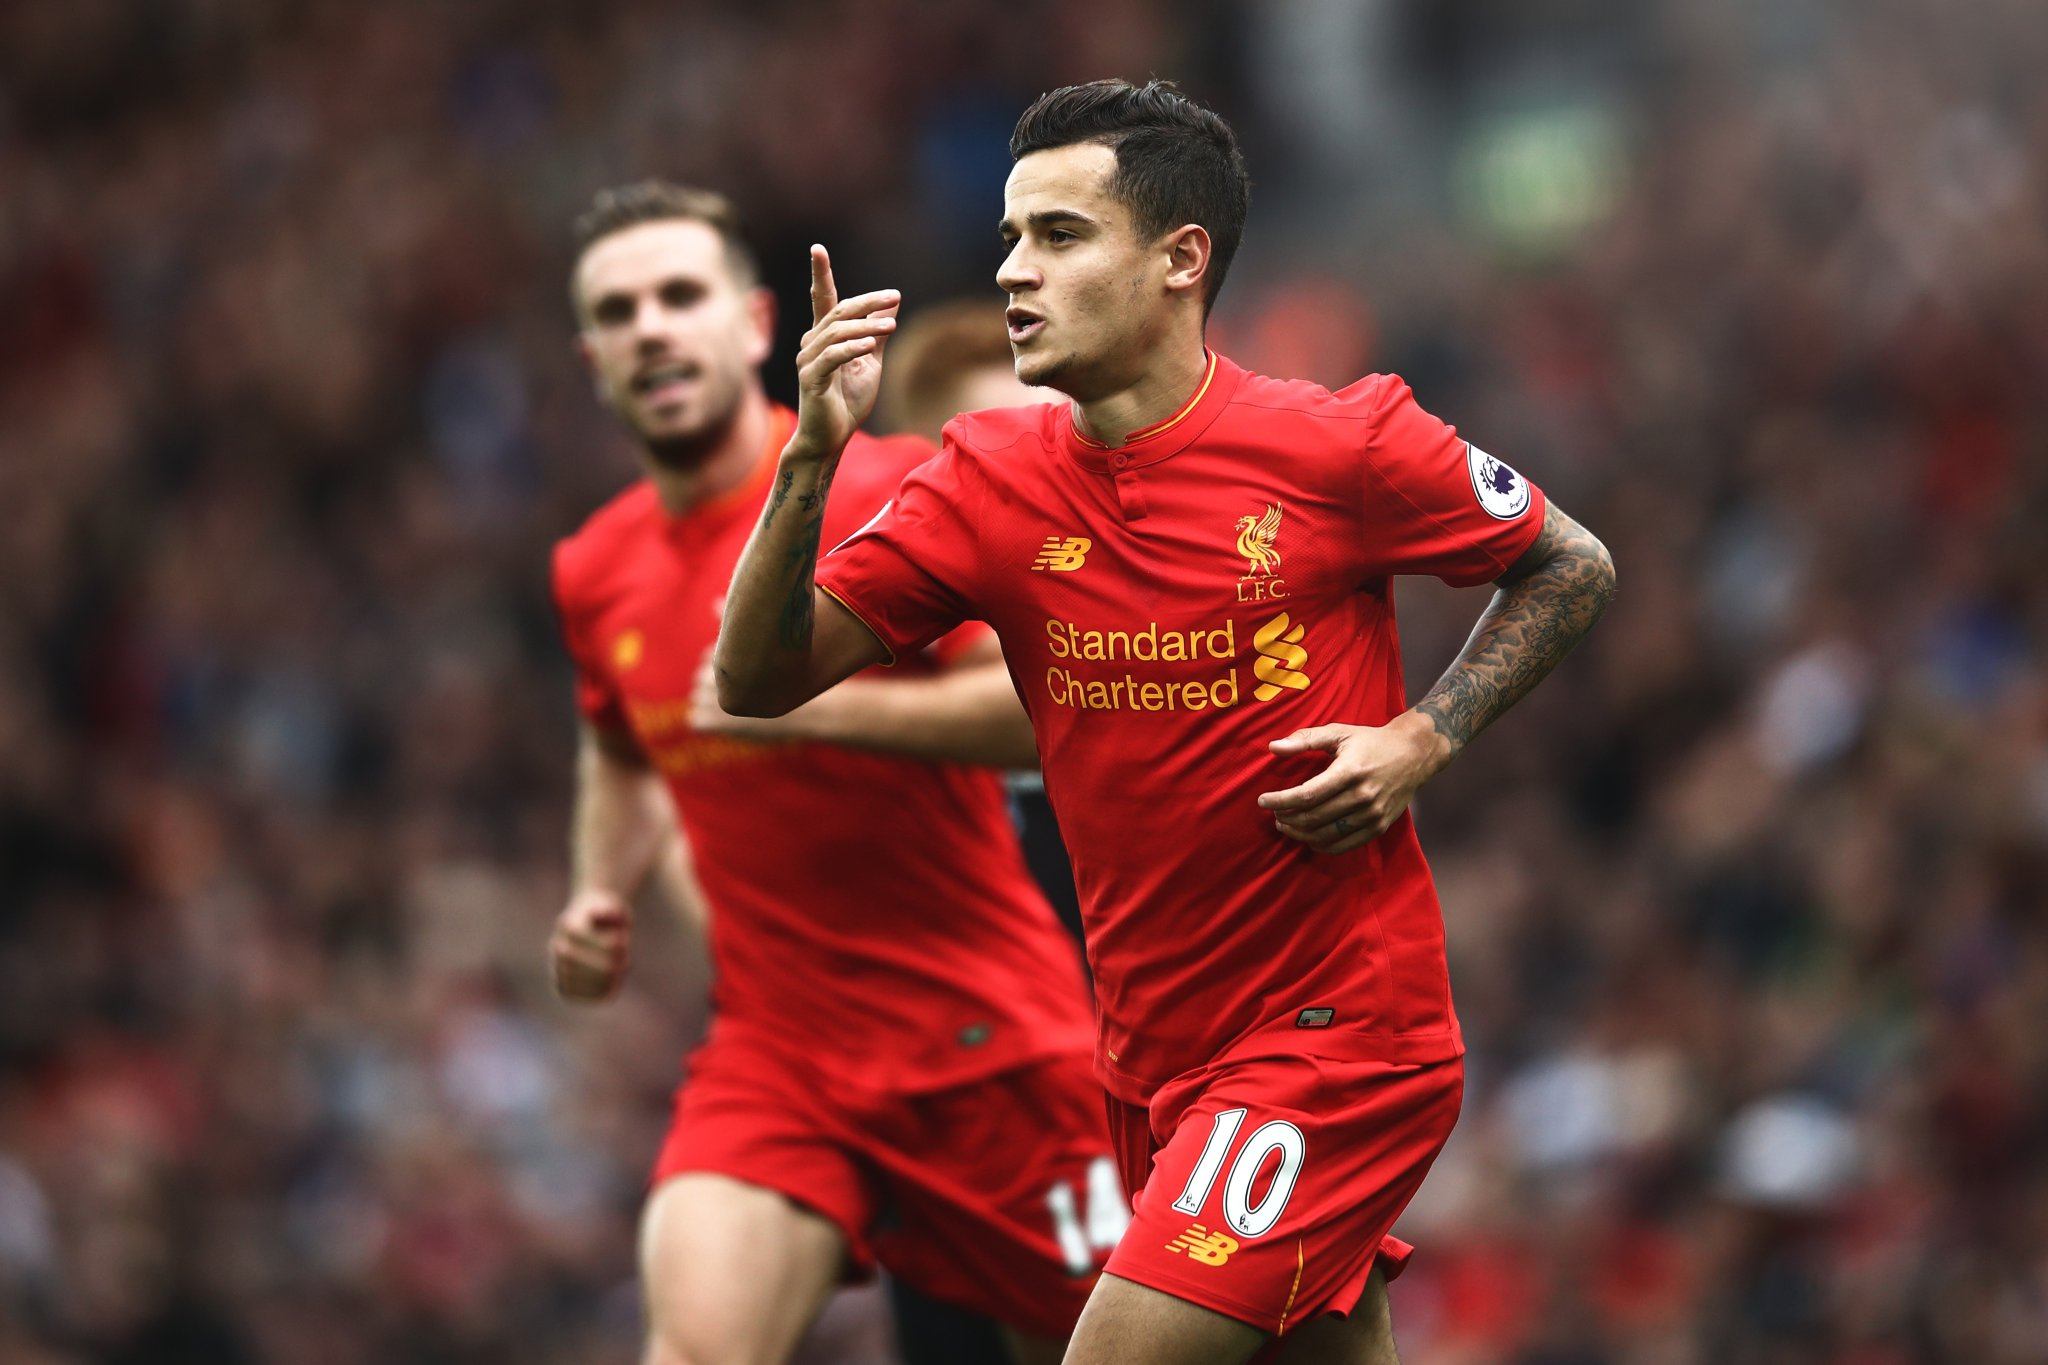 Coutinho is better than Mesut Ozil & Kevin De Bruyne says top pundit